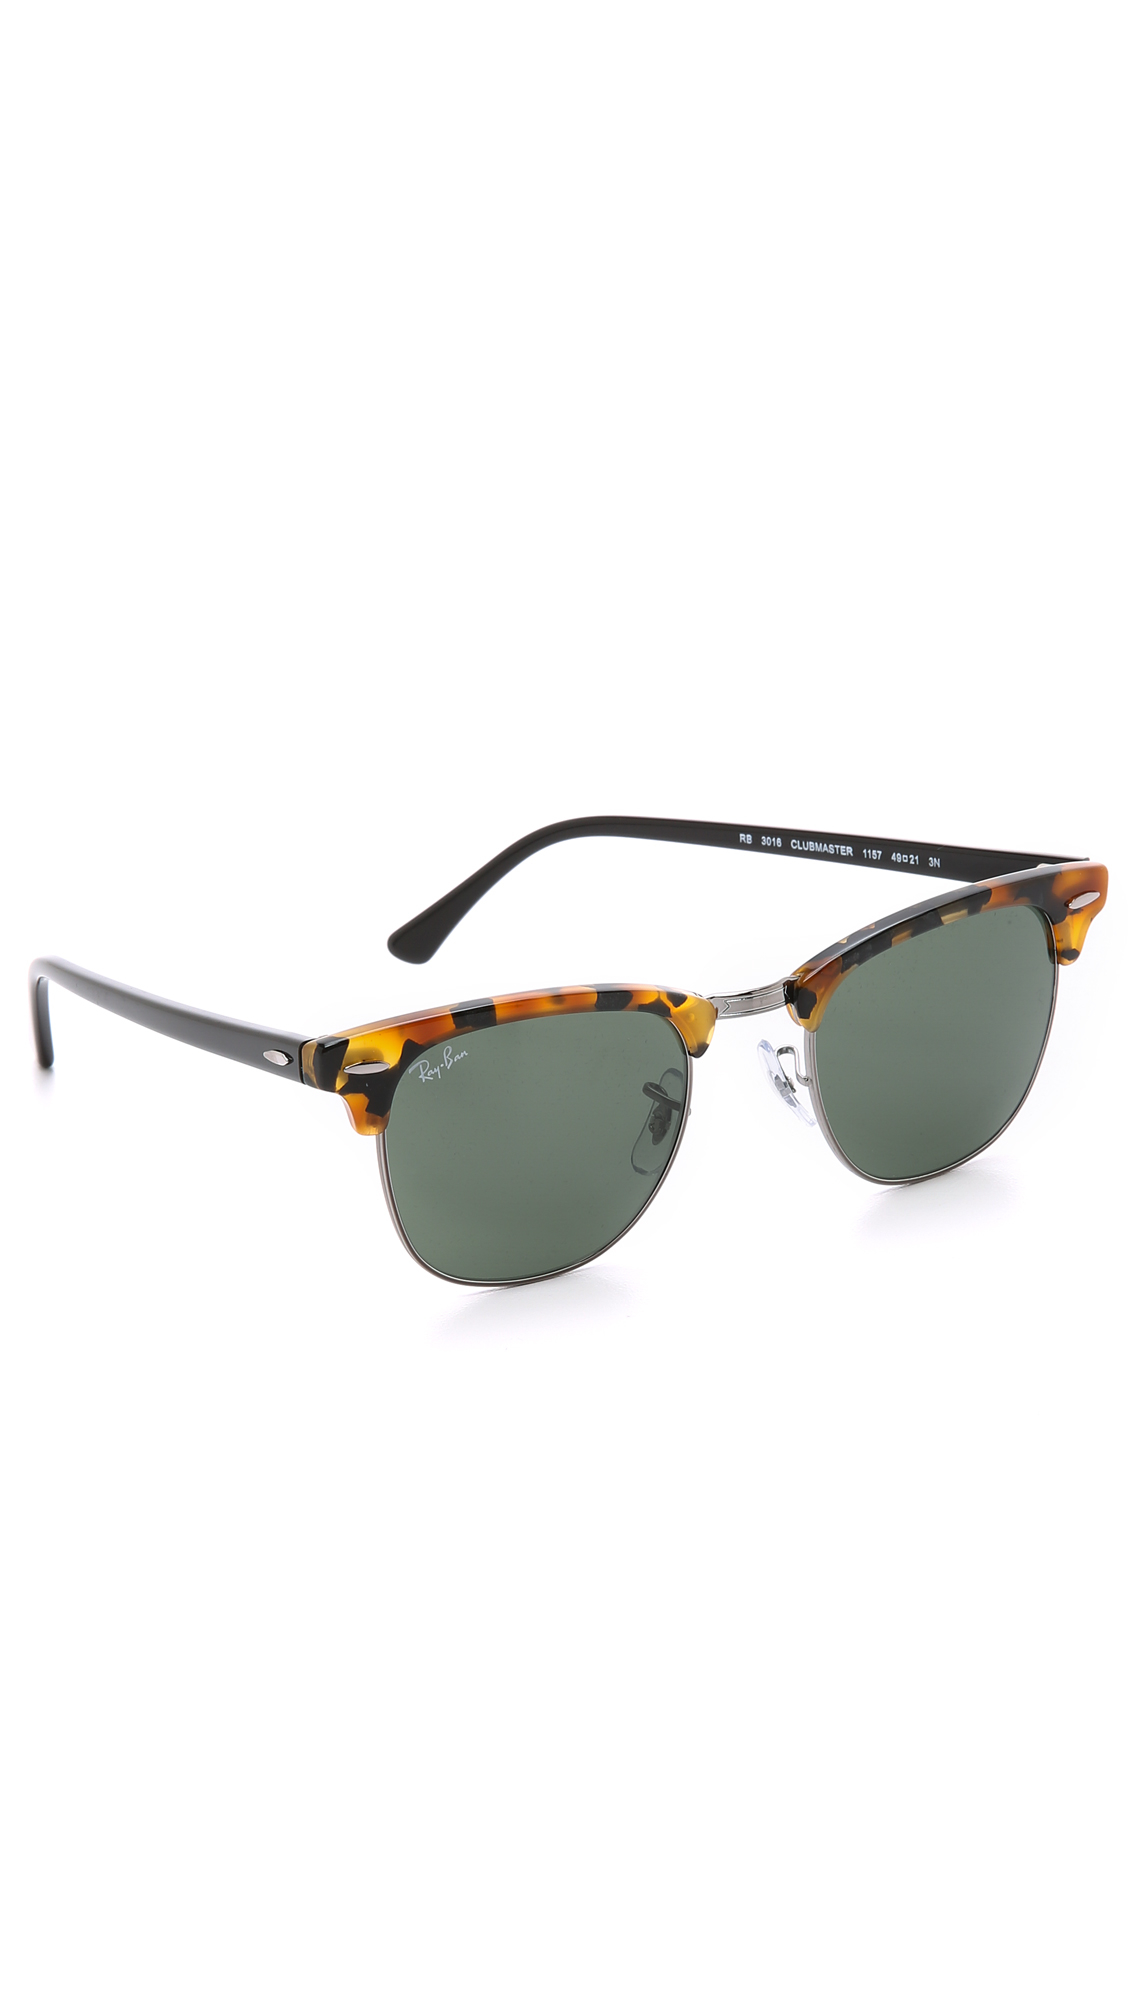 45f6dbe38f91 Ray Ban Clubmaster Men s Black